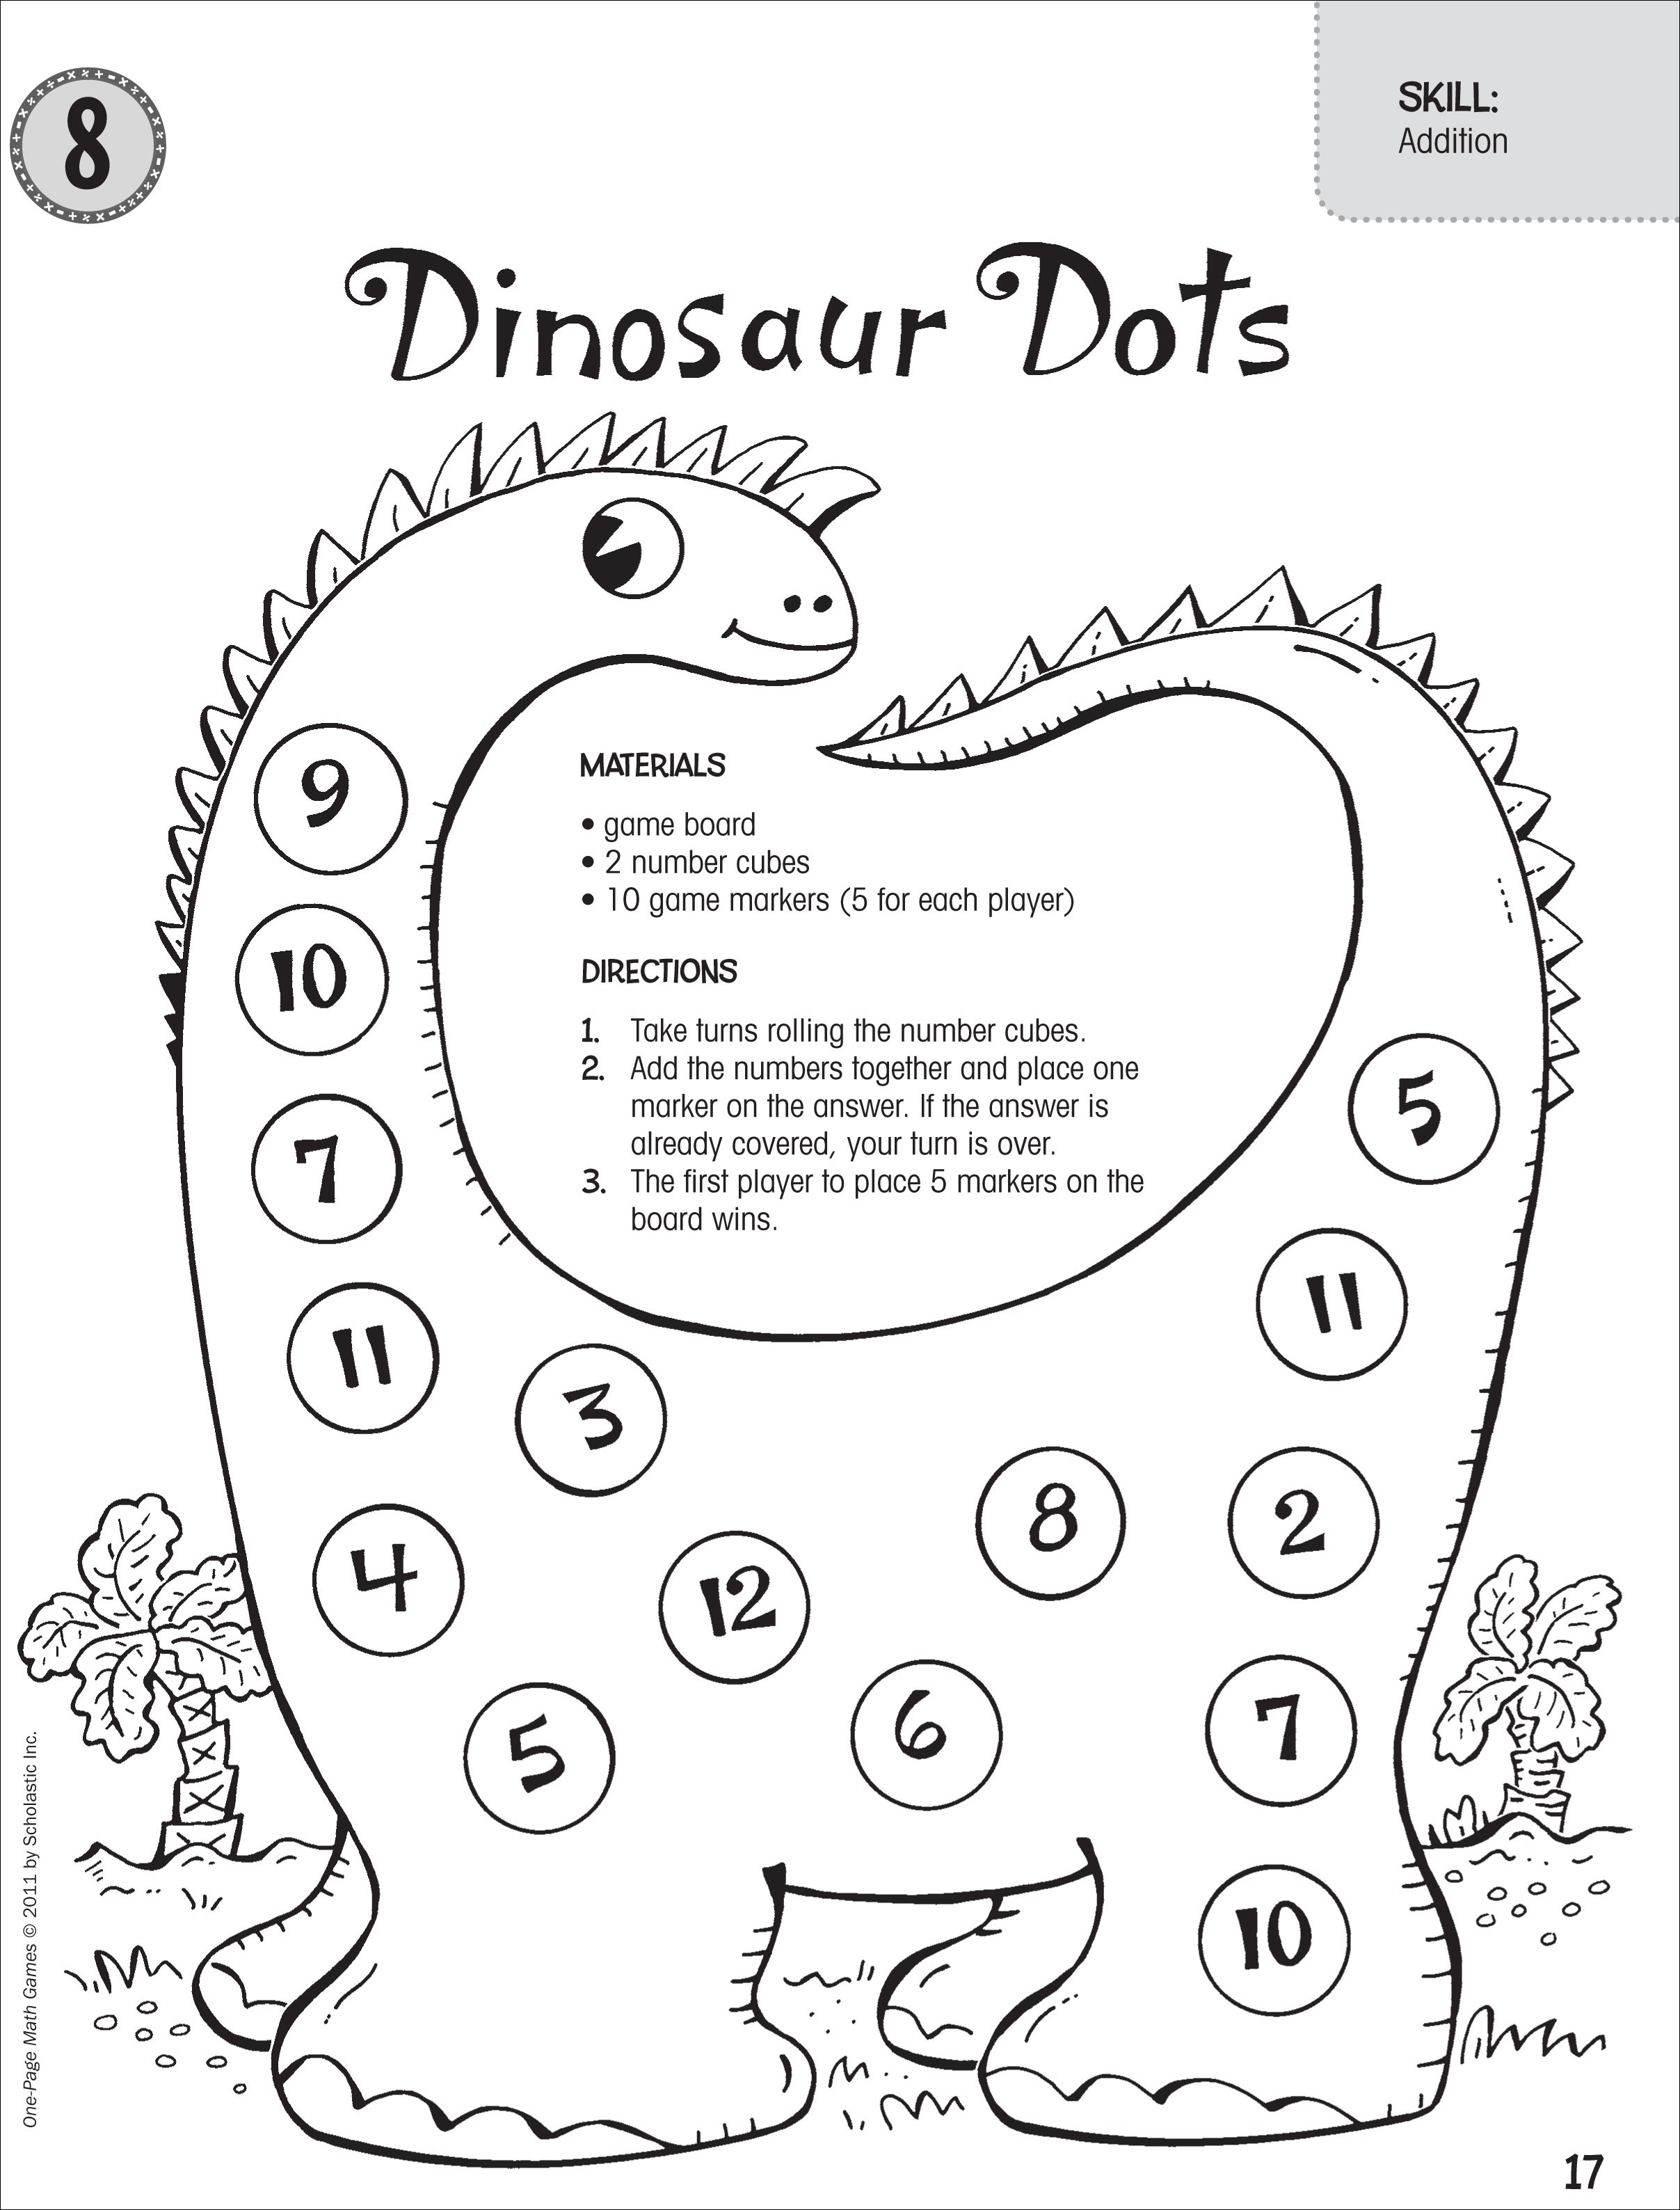 Dinosaur Math Games For Preschoolers Dinosaurs Pictures And Facts